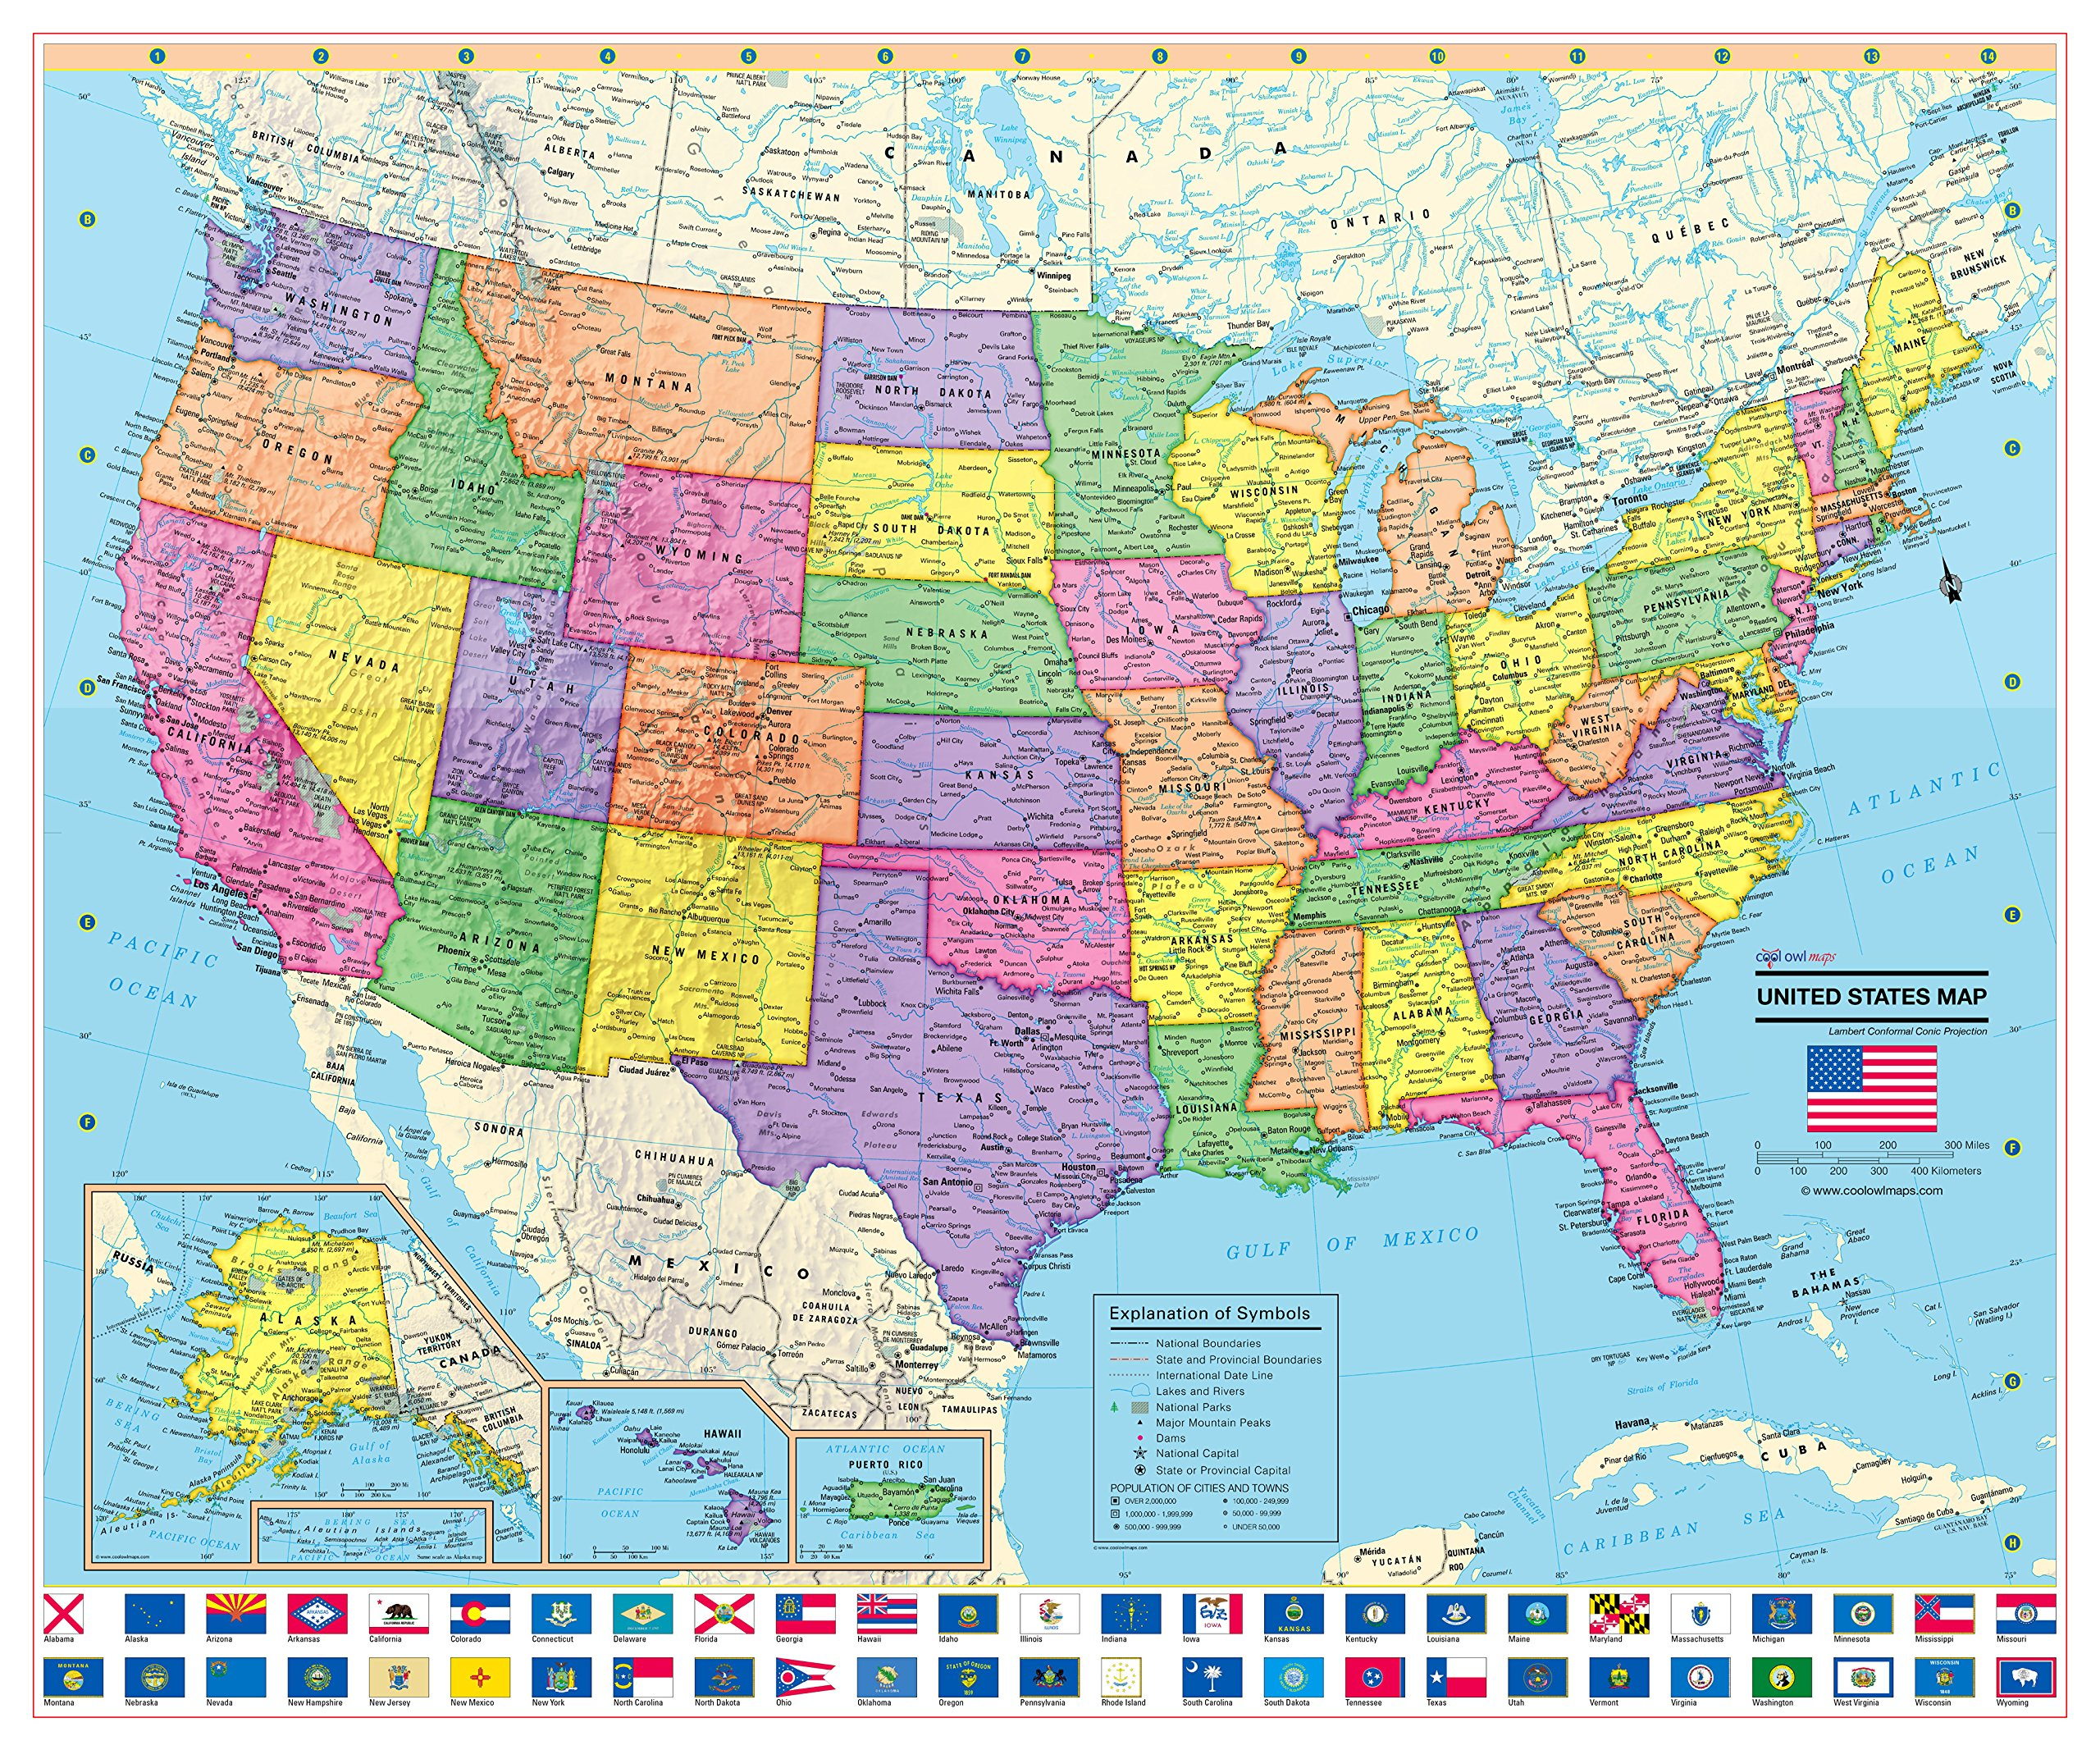 United States Wall Map Poster with State Flags - 24x20 Rolled Laminated - 2018